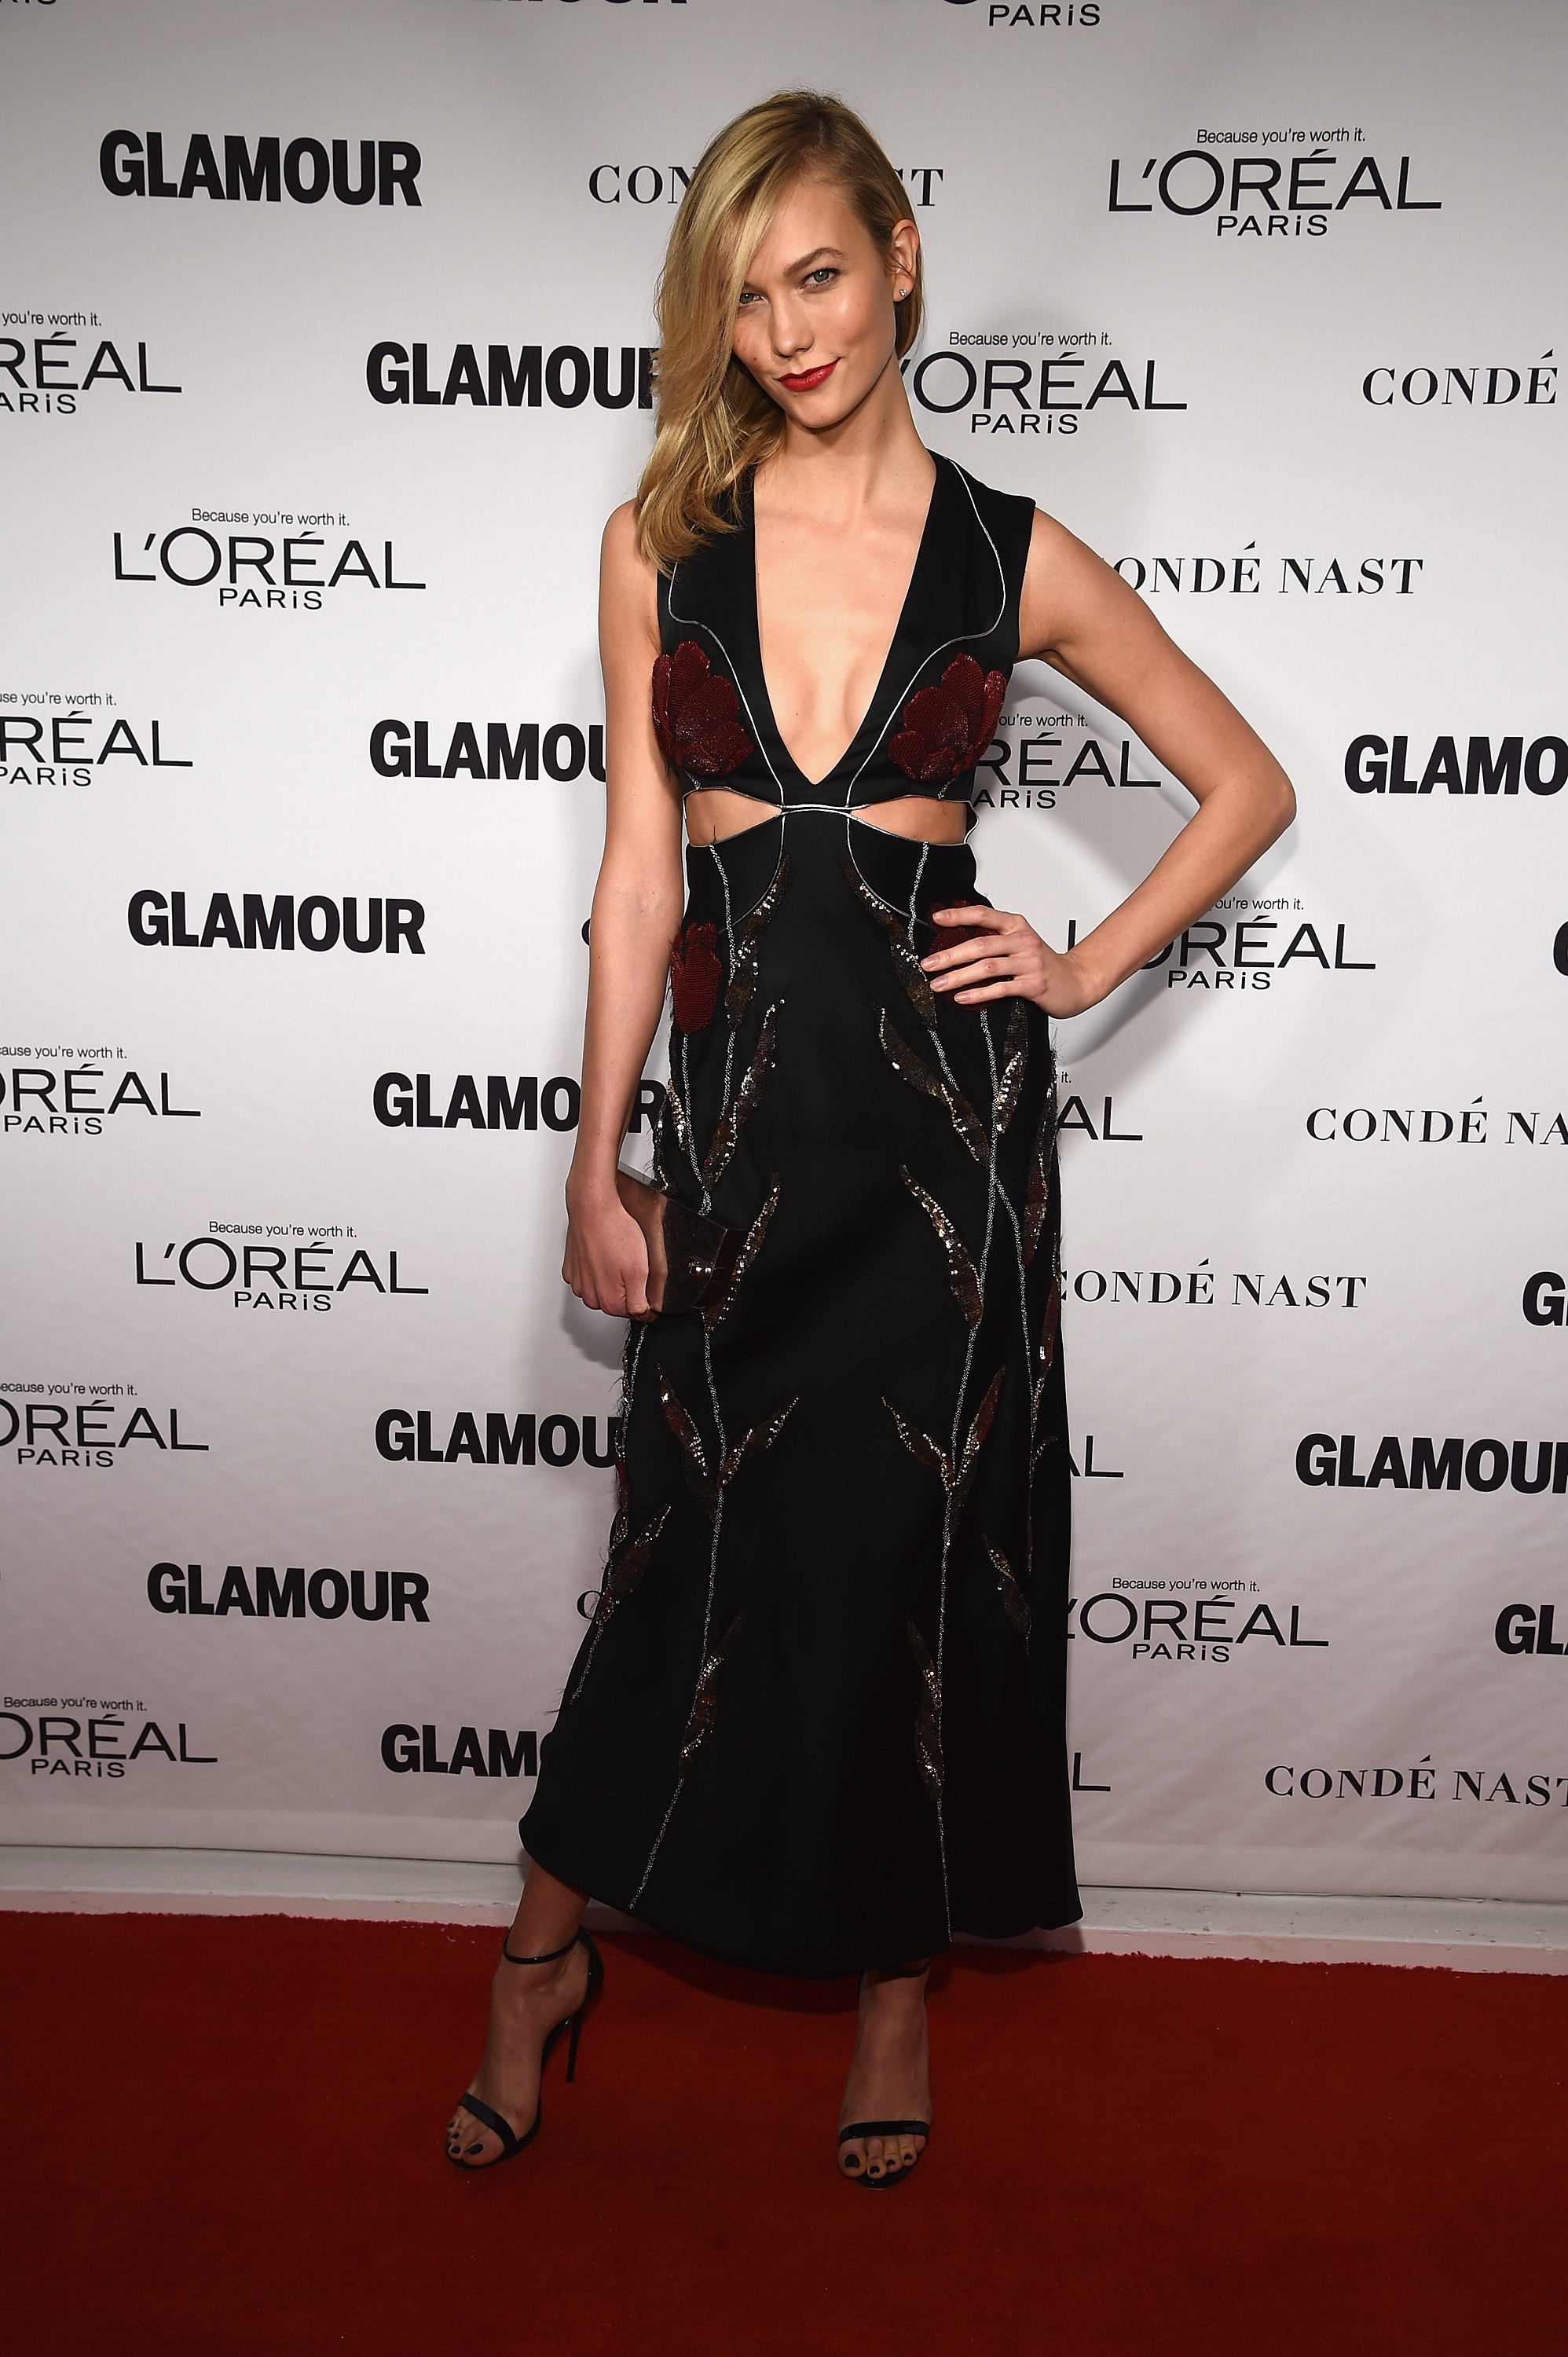 Look of the daily karlie kloss in alexander mcqueen